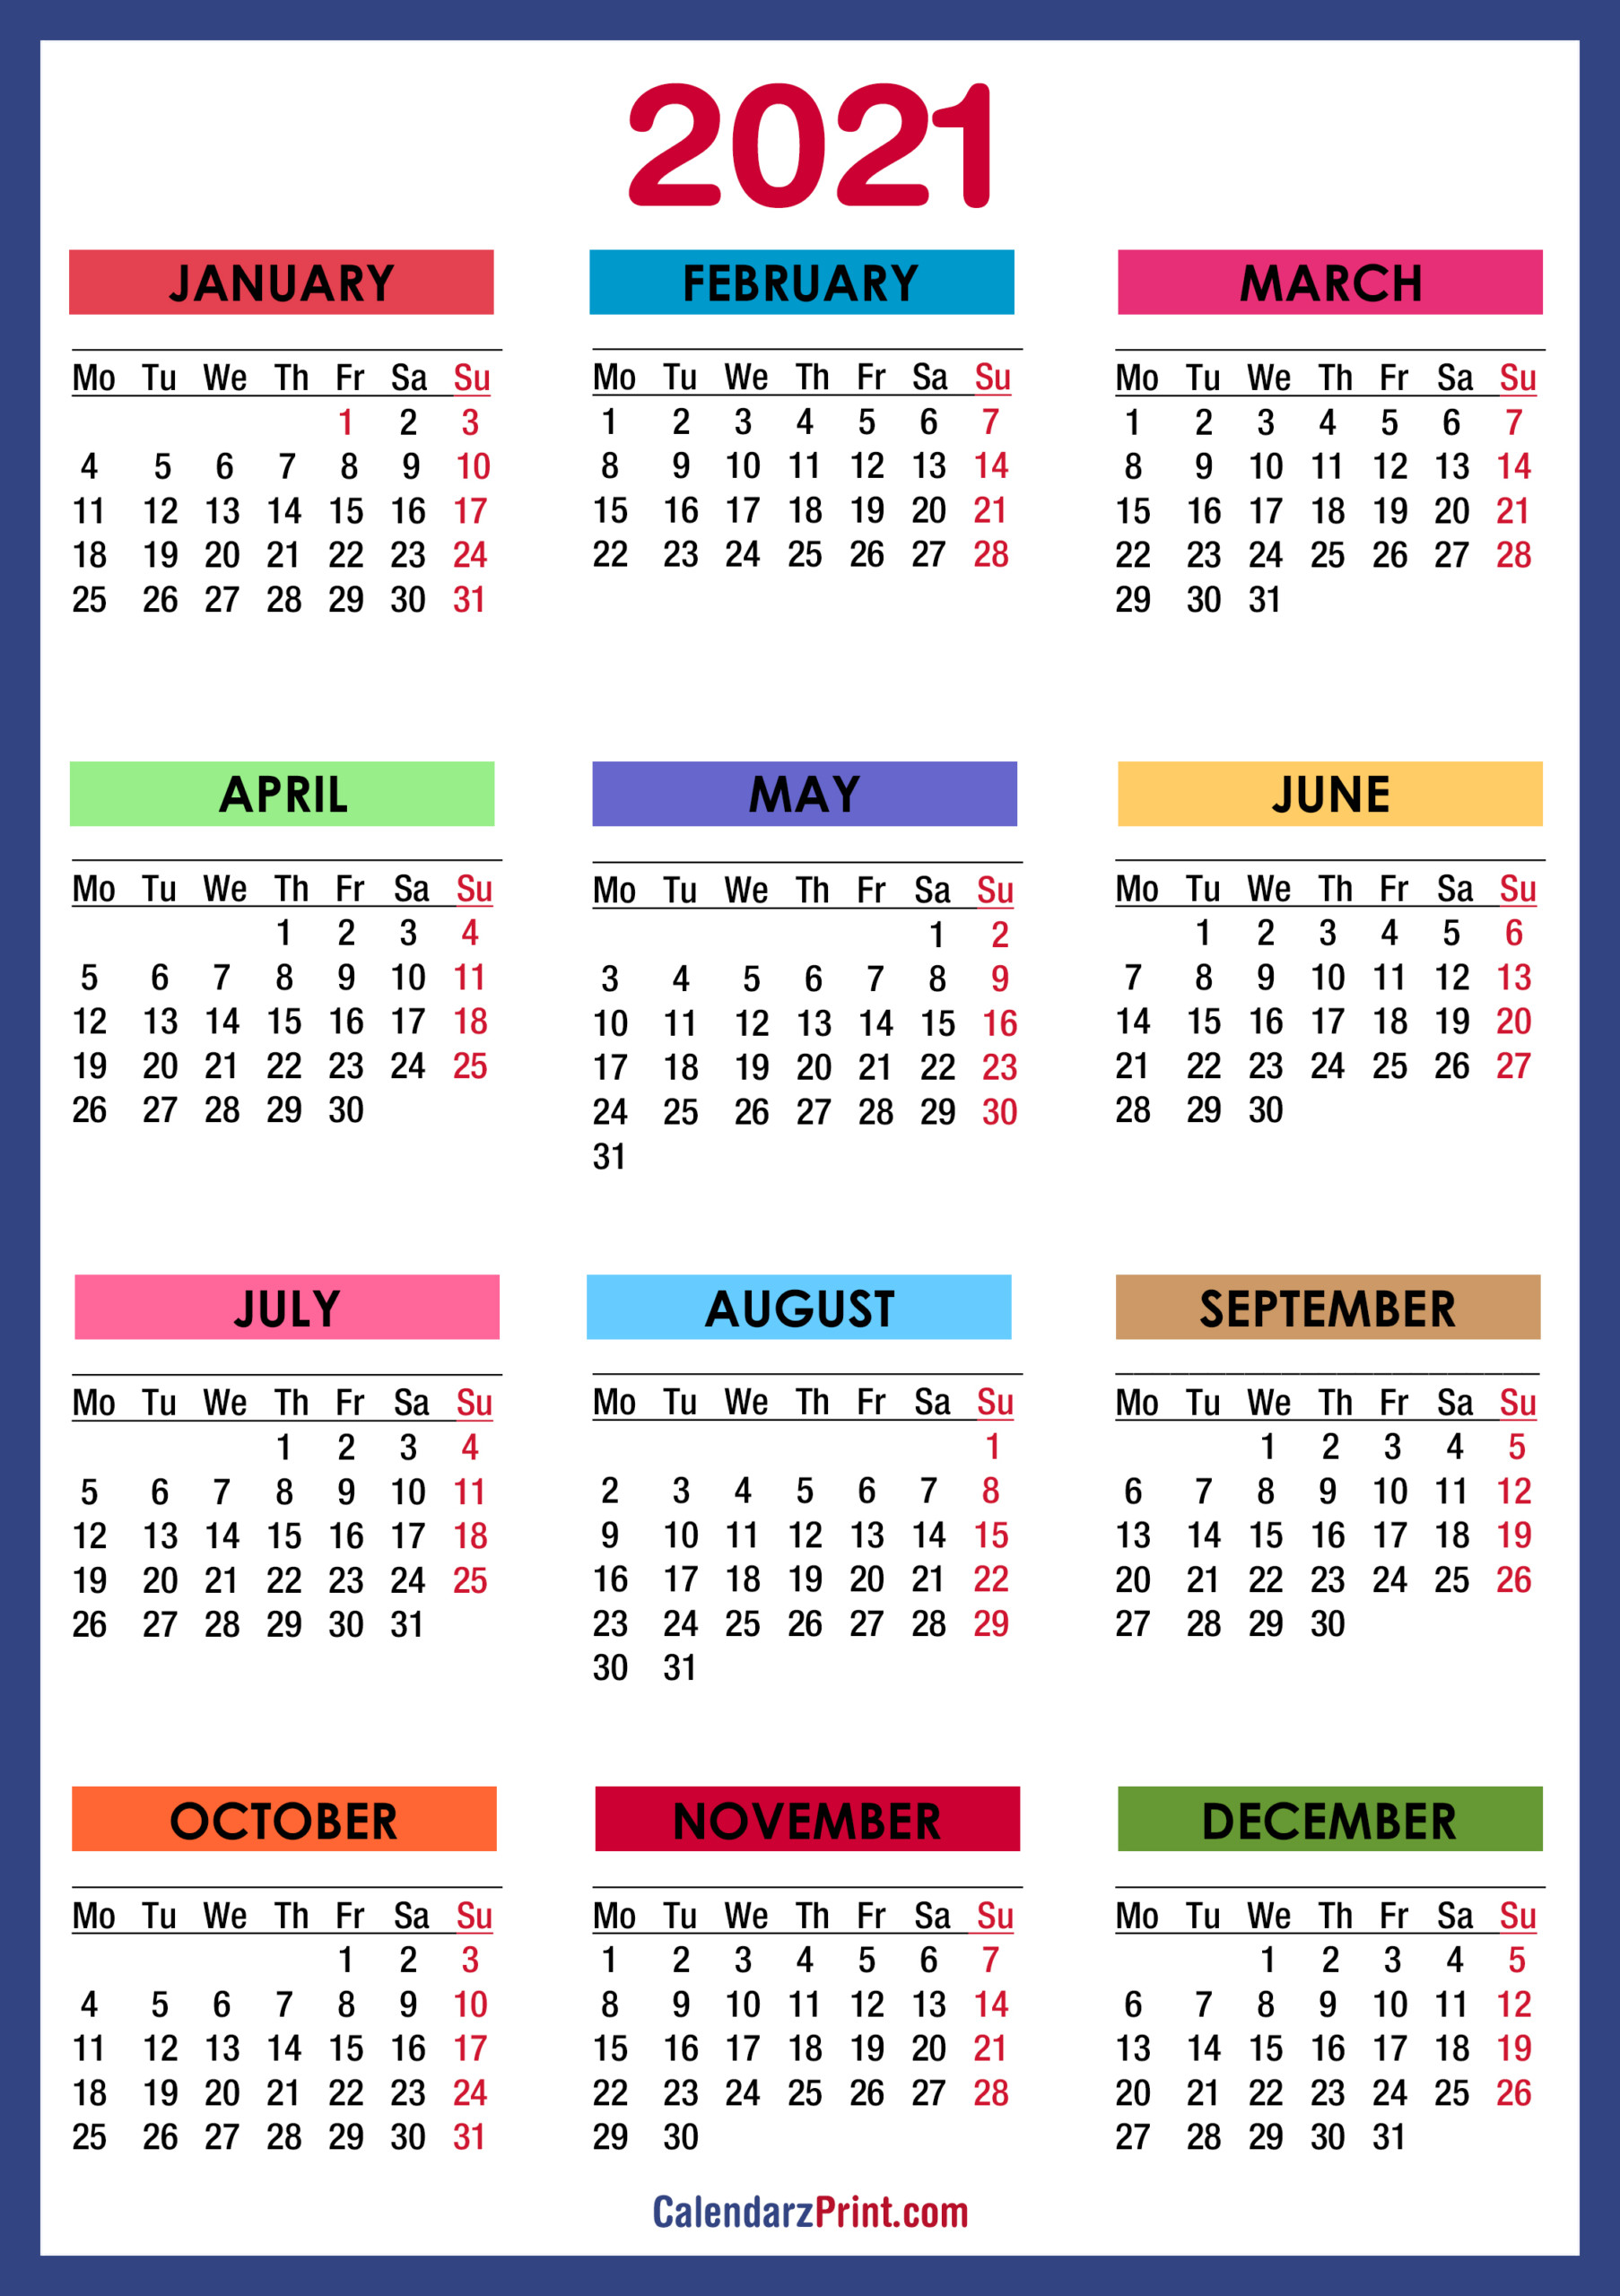 2021 Calendar Printable Free, Colorful, Blue, Green – Monday